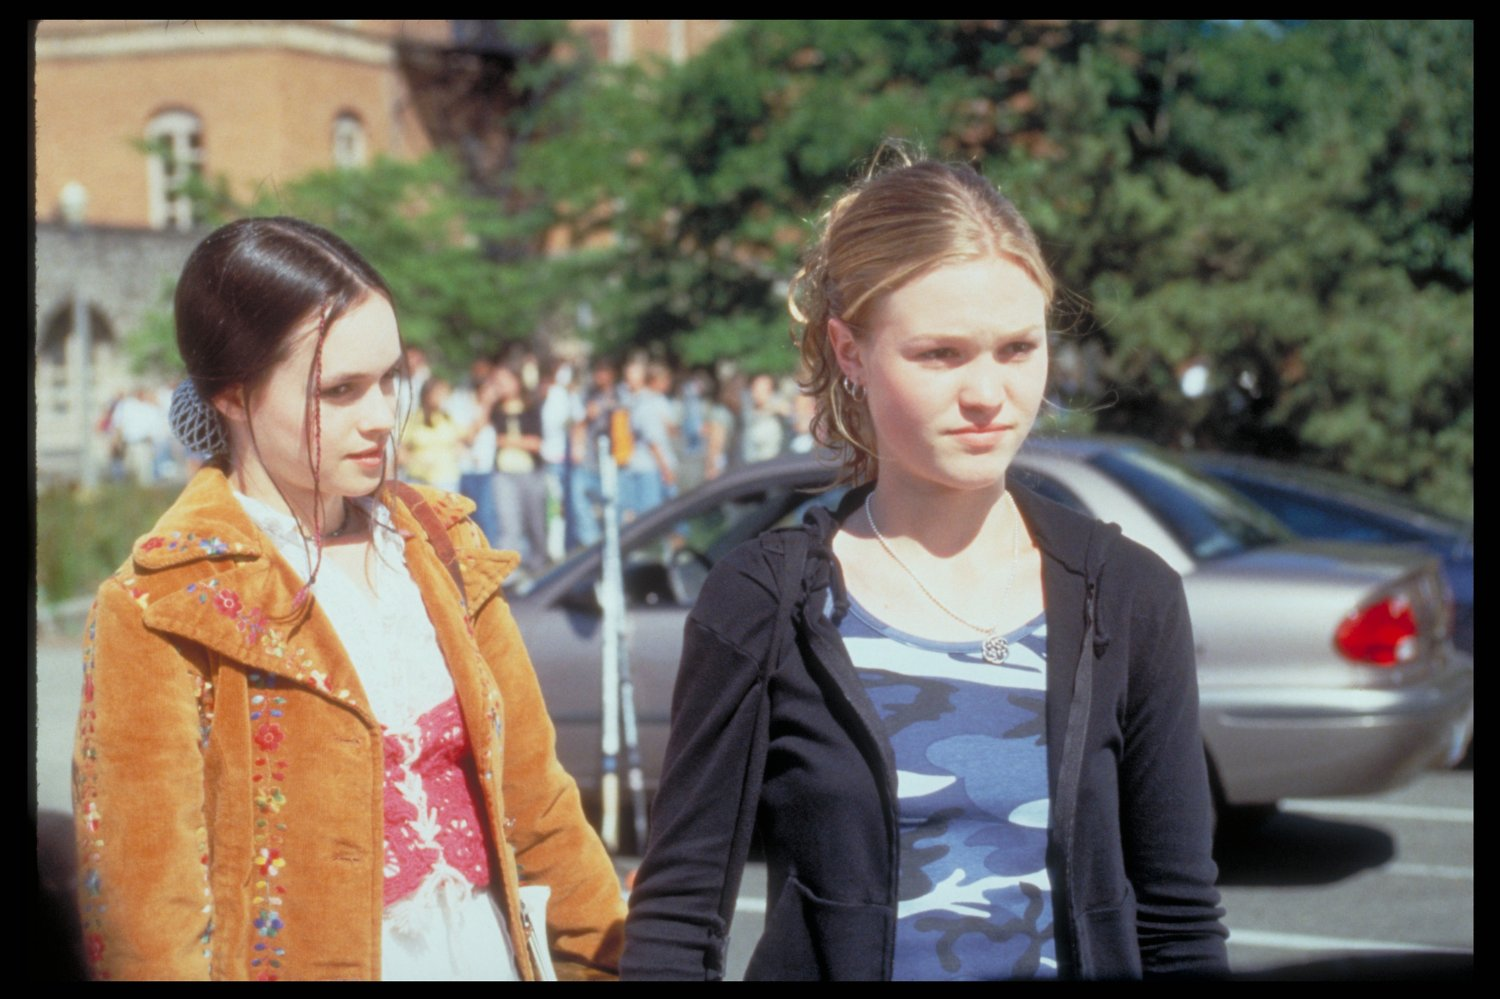 Ten Things I Hate About You Film Stills: 10 Things I Hate About You 1999 Full Movie Watch In HD